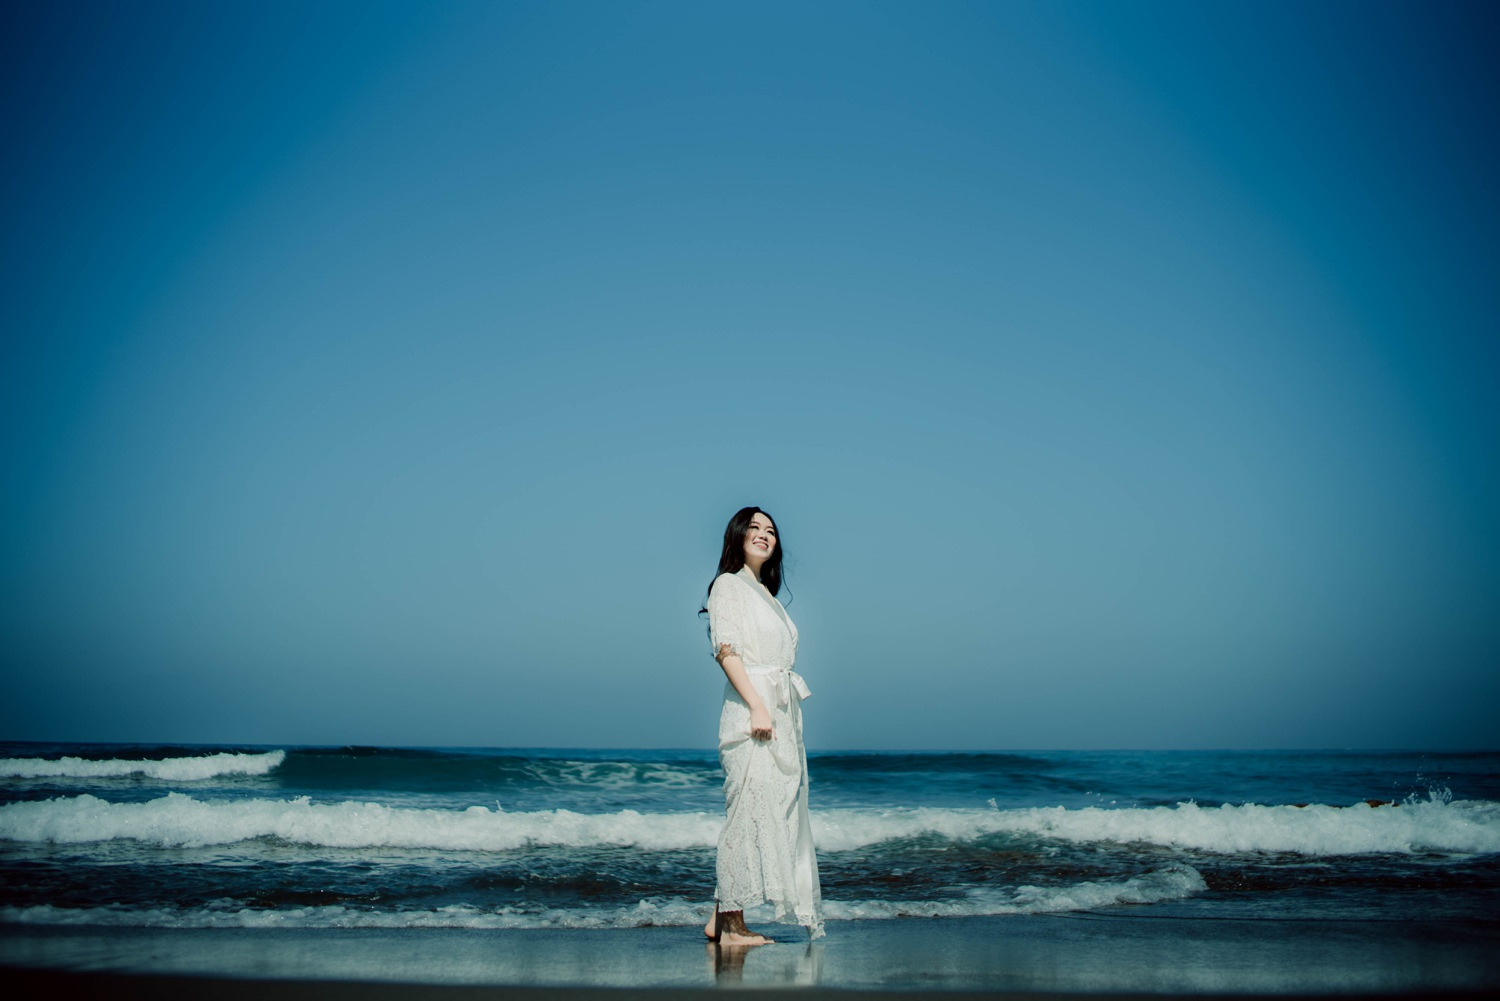 Oak St. Studios - Steffi and Jerich - La Union Beach Wedding Photographer